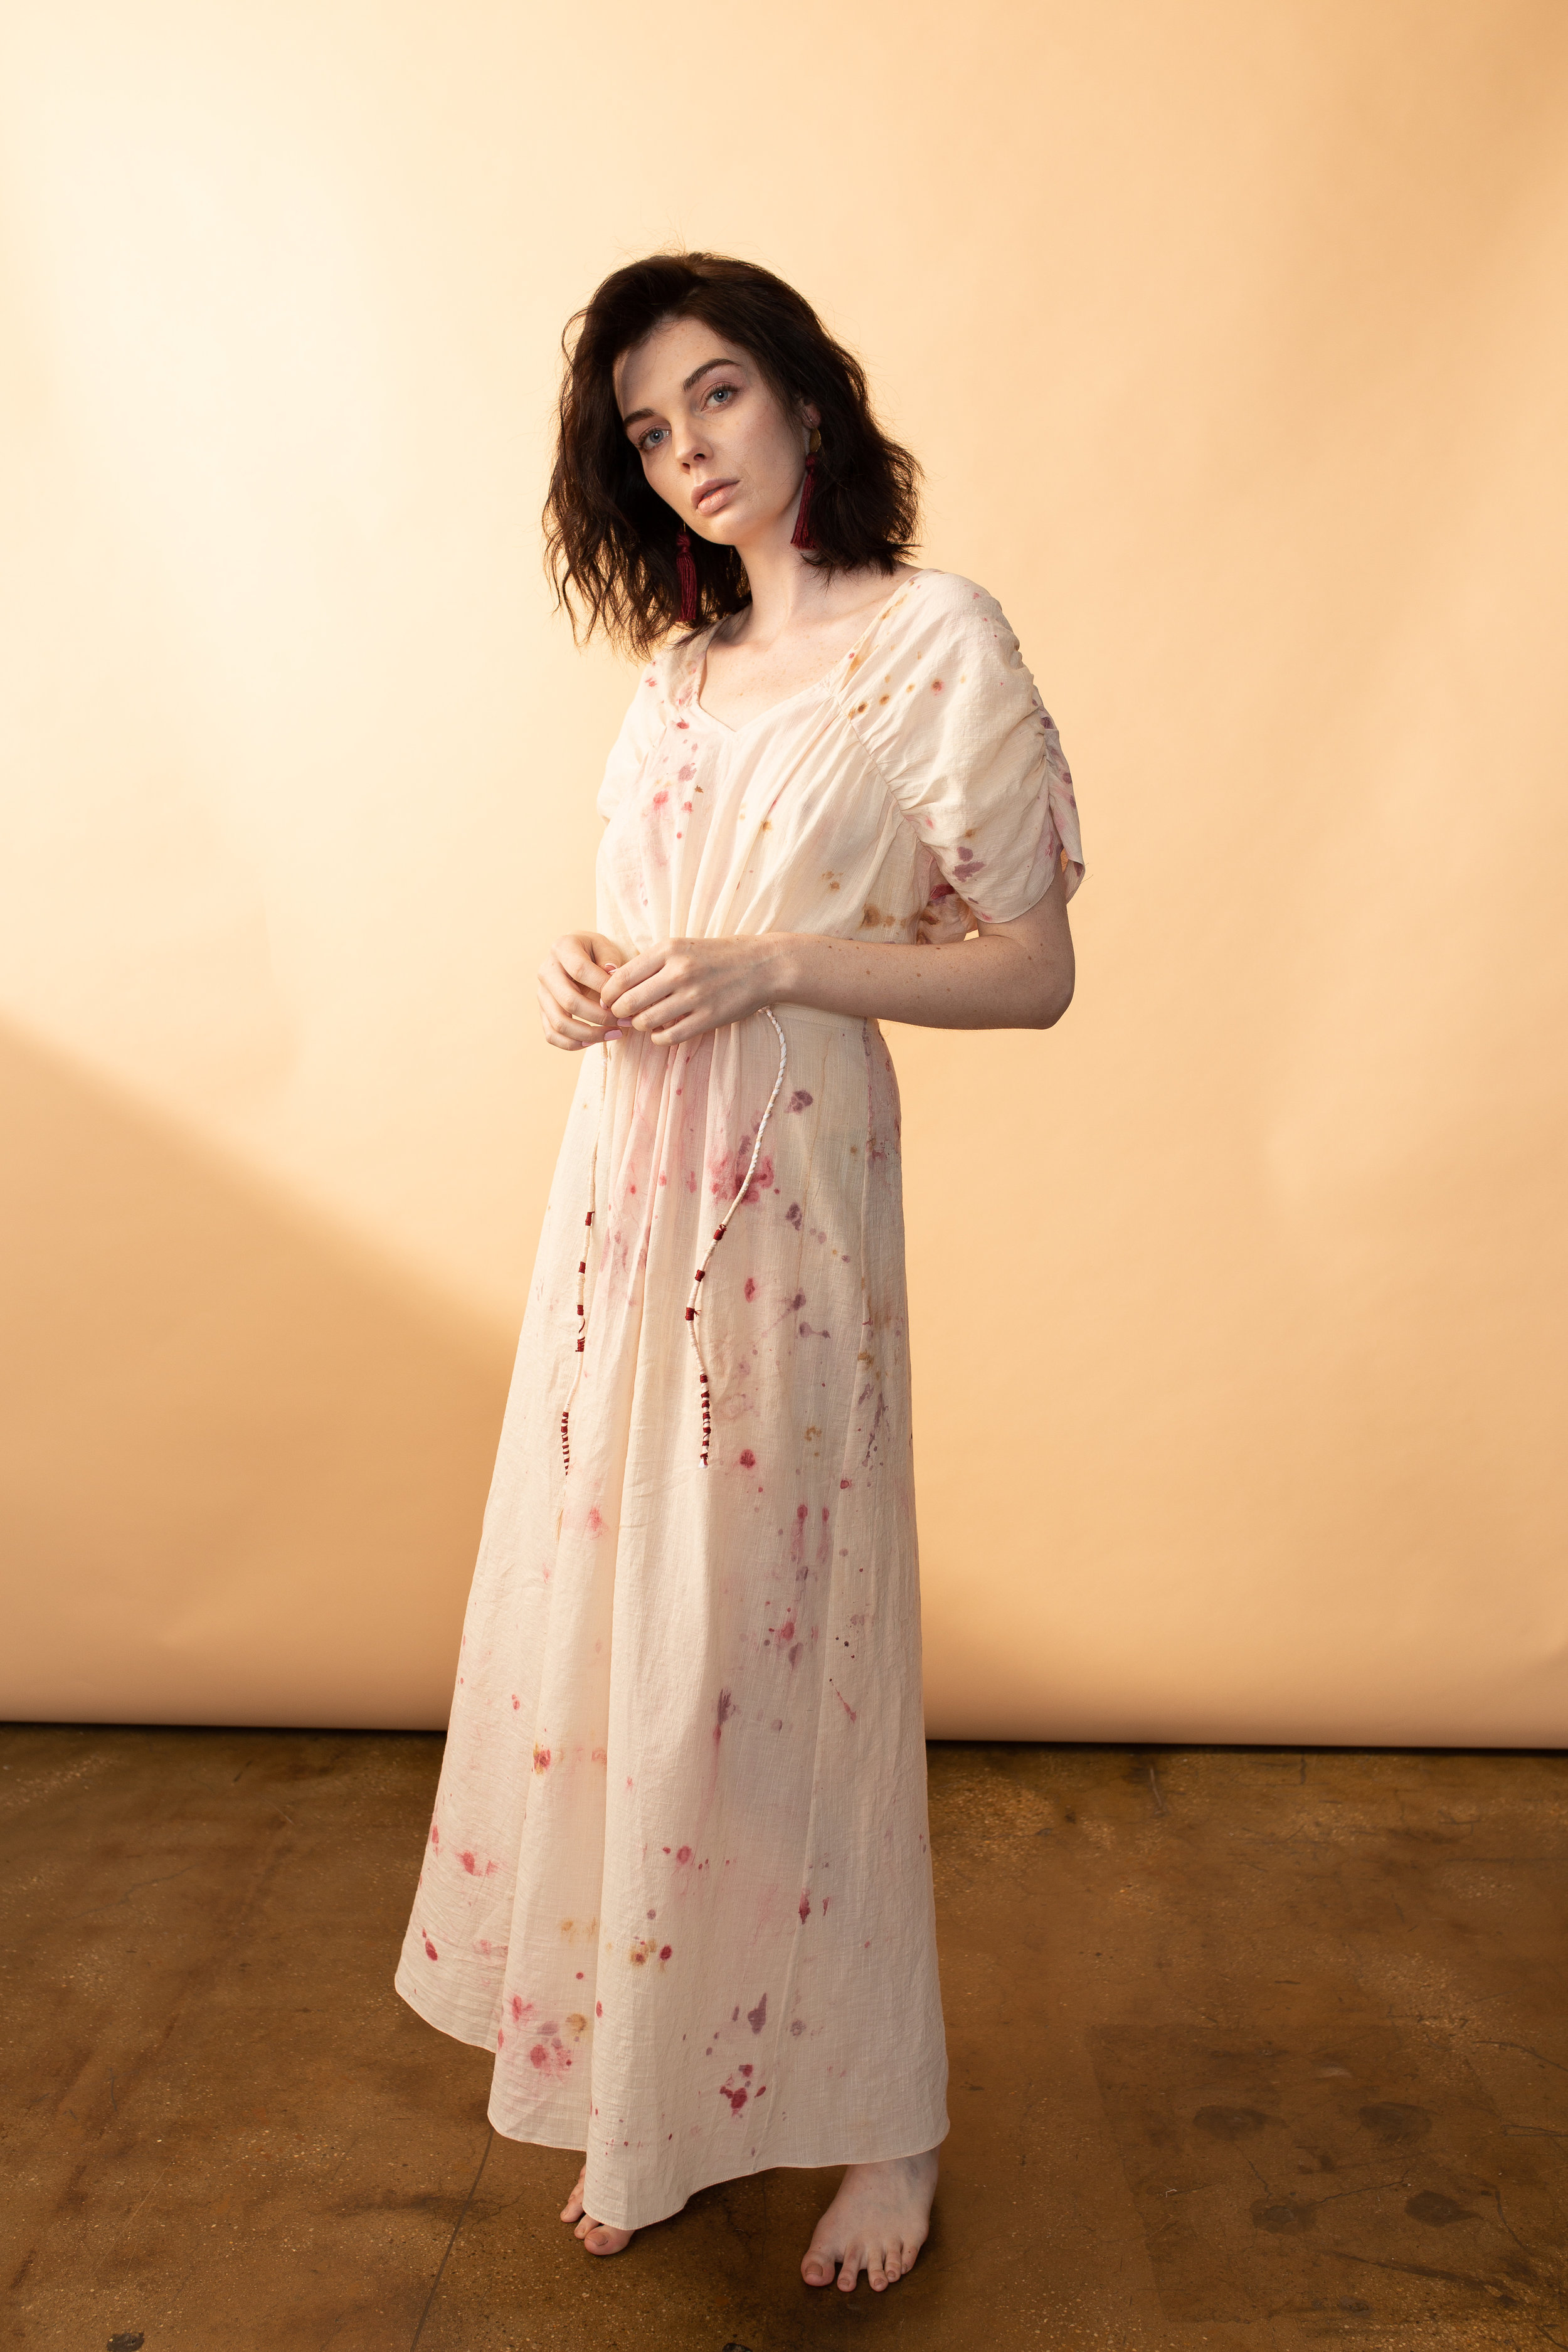 We believe in special: carefully and thoughtfully created from conception to design.  The Portia dress was made in a very limited number,  you can get yours  here.